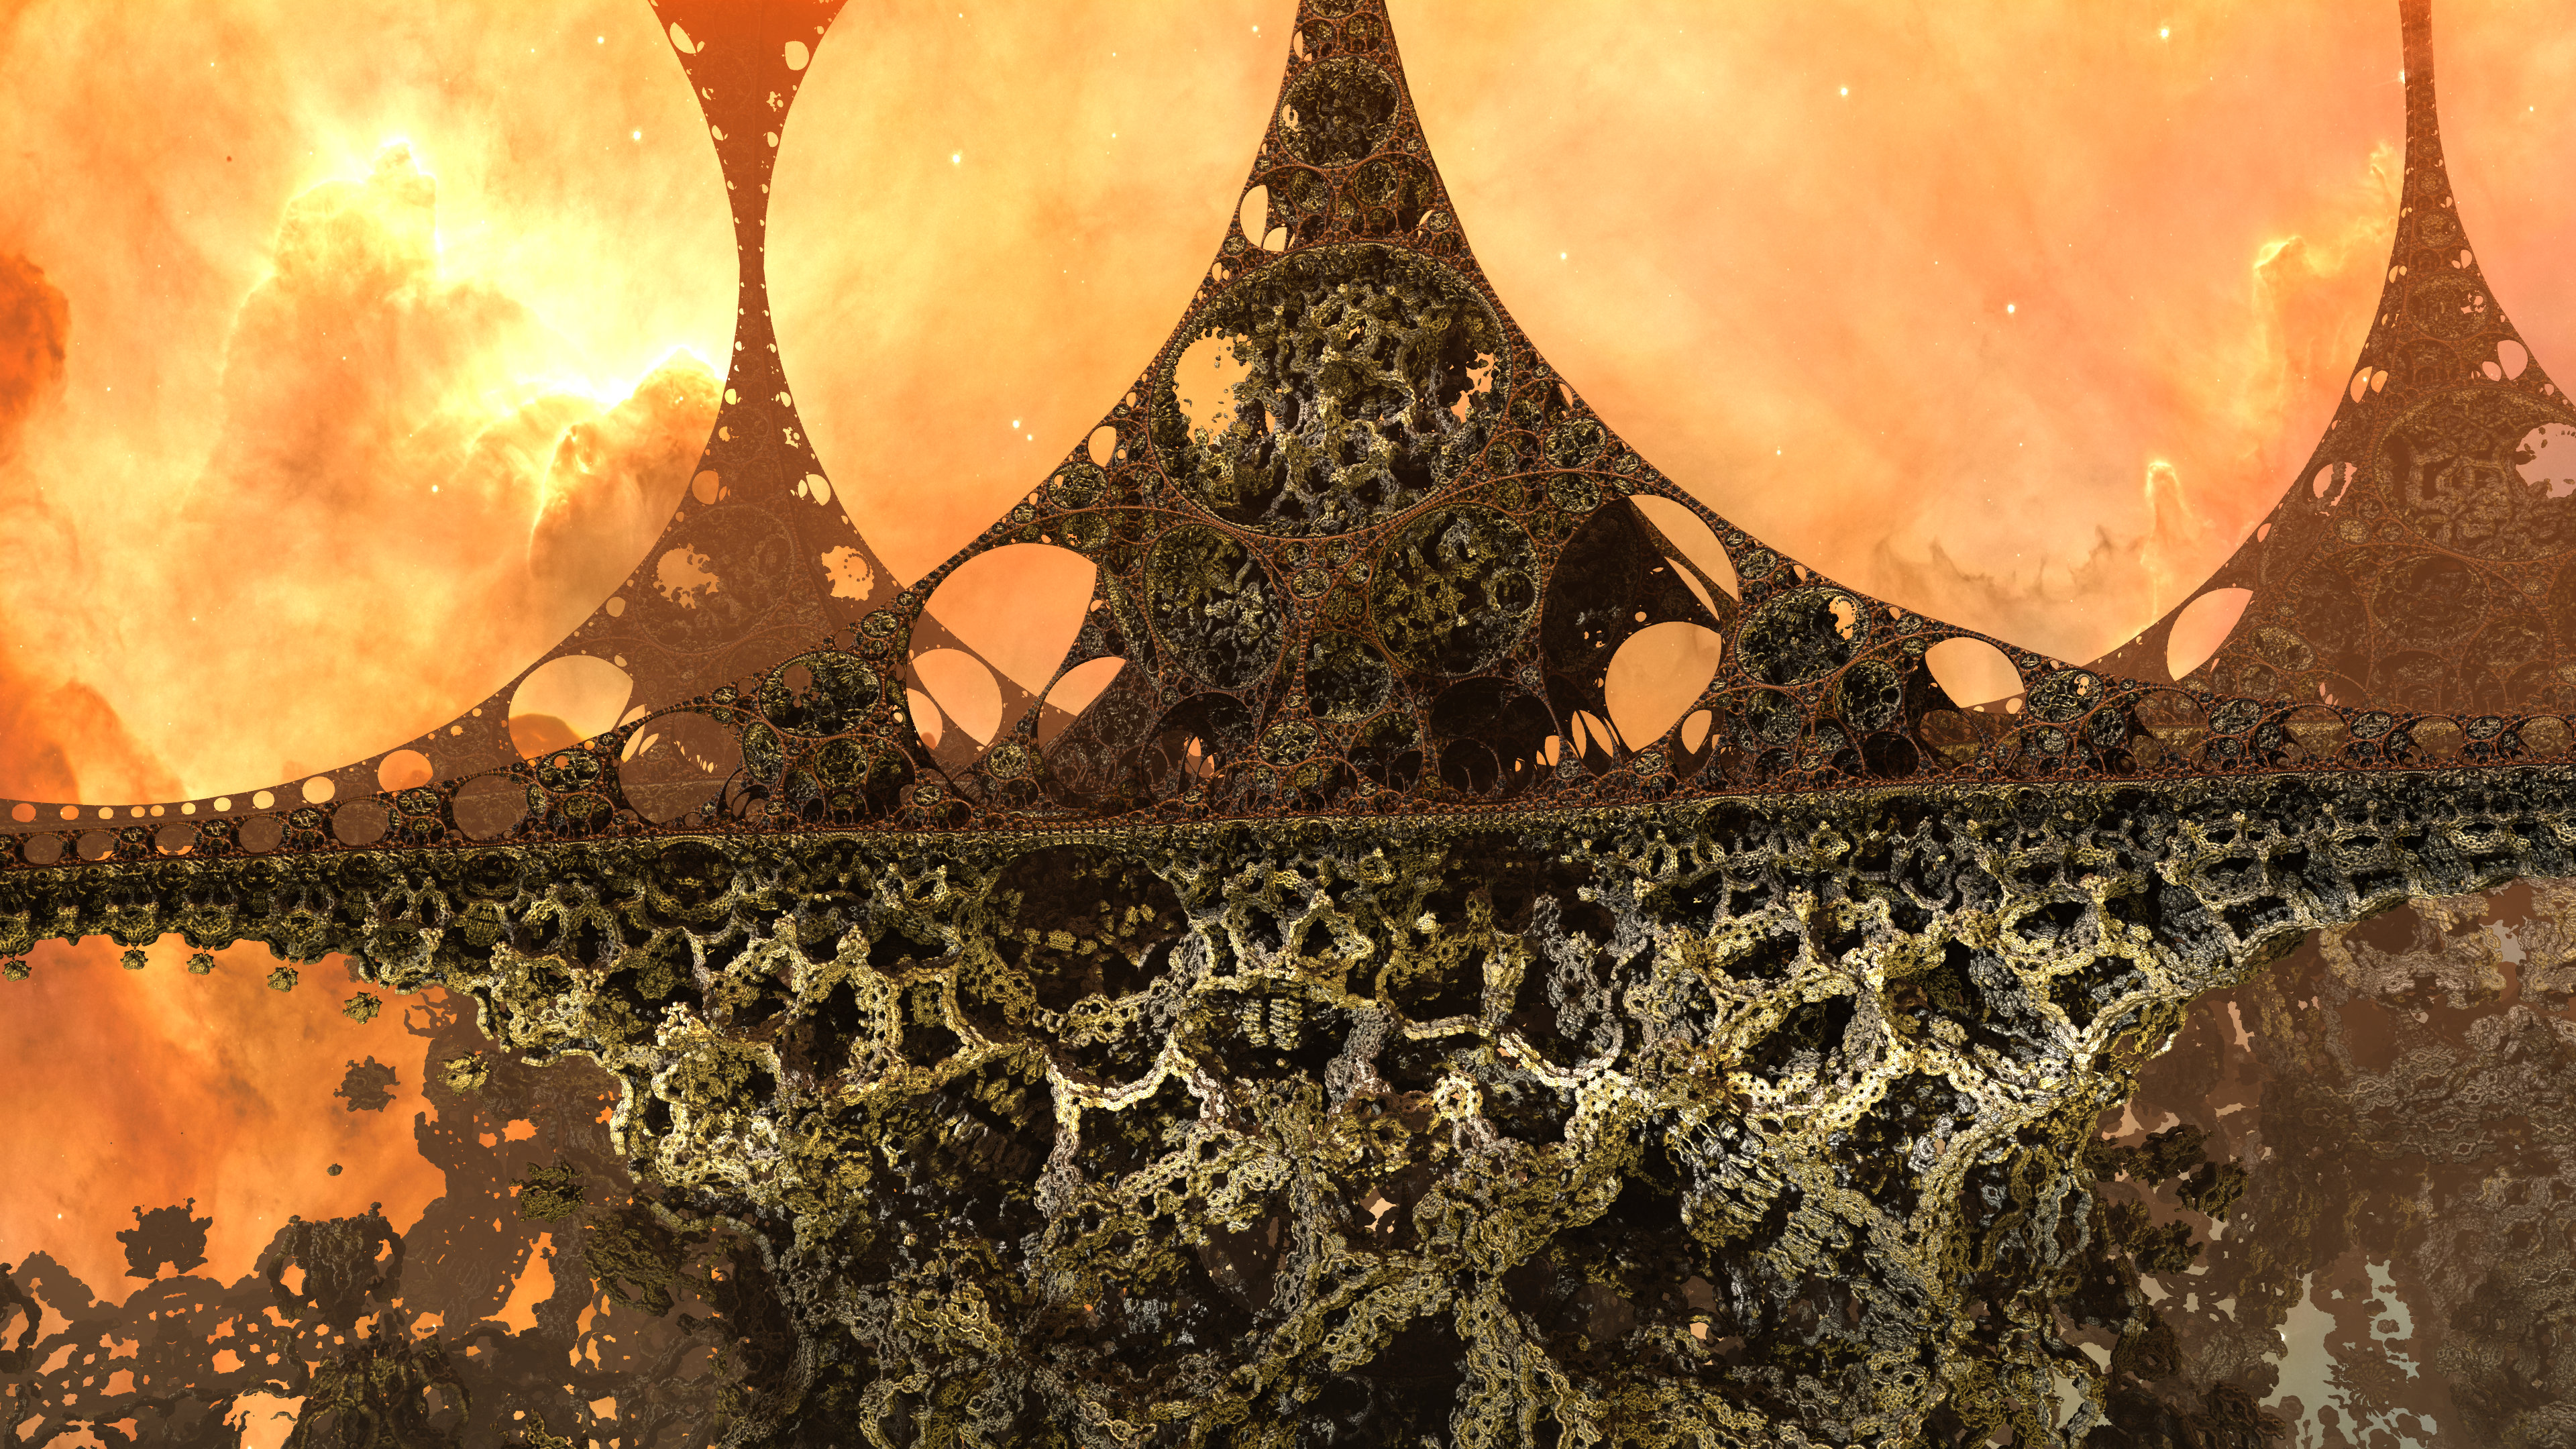 Fractalscapes №0191 MC